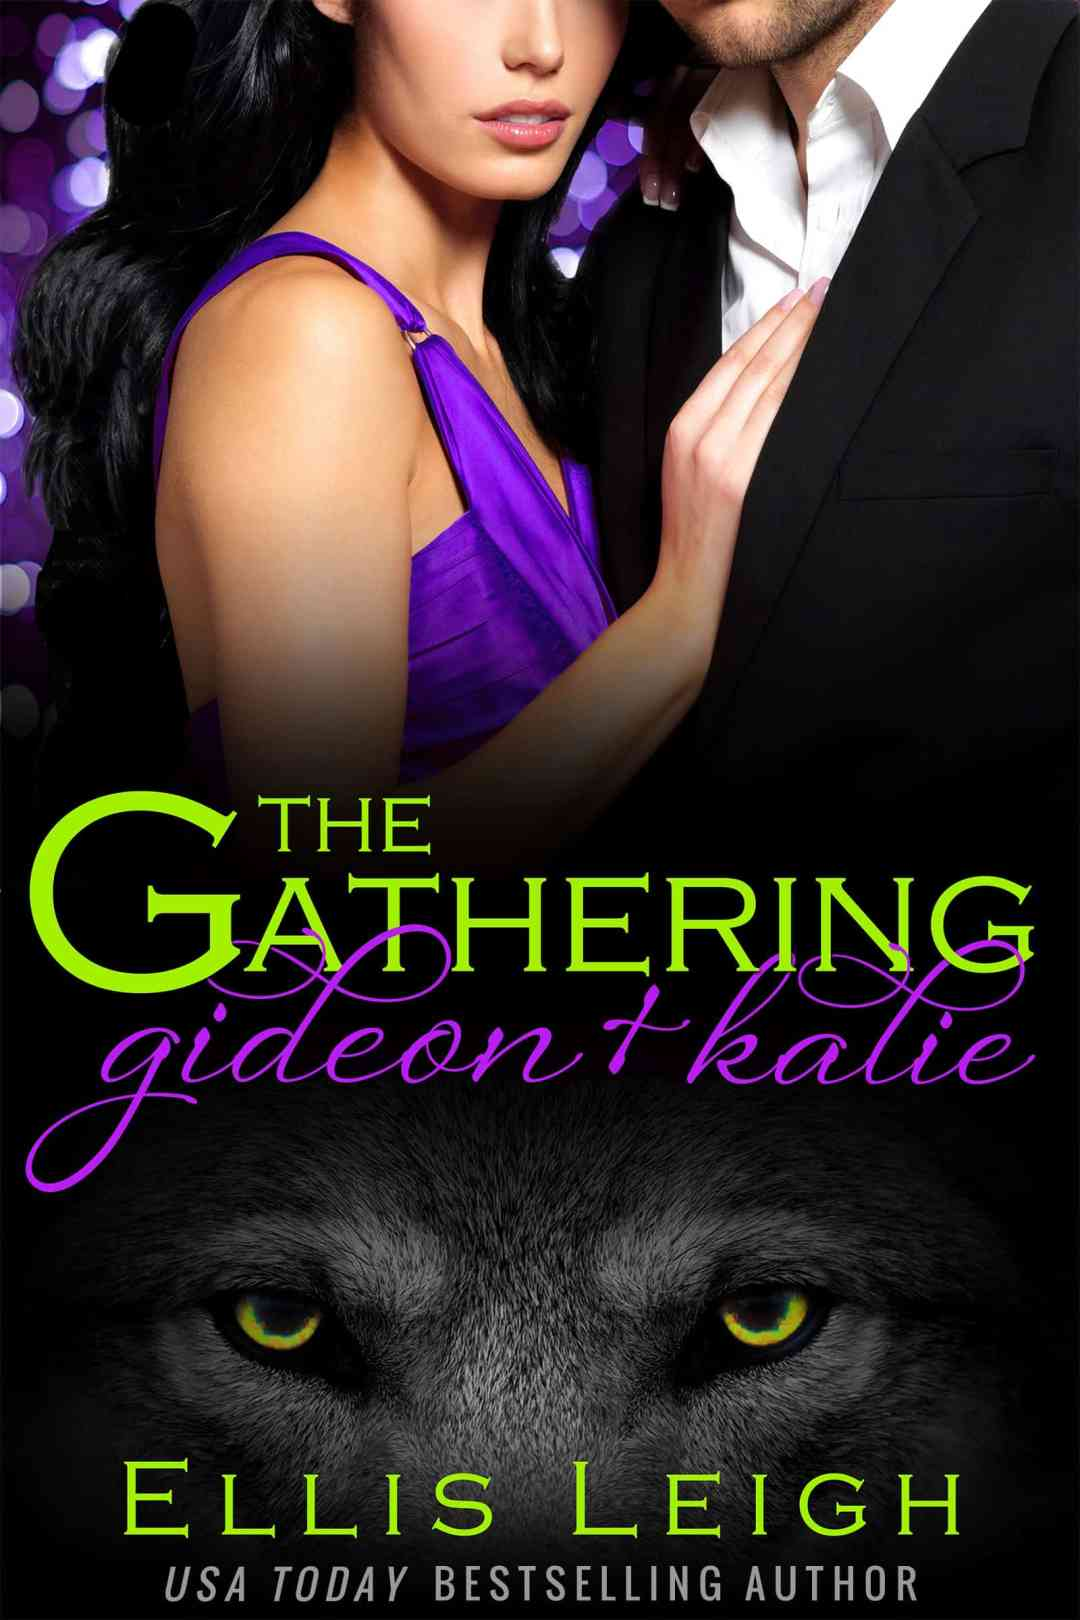 The Gathering: Gideon and Kalie